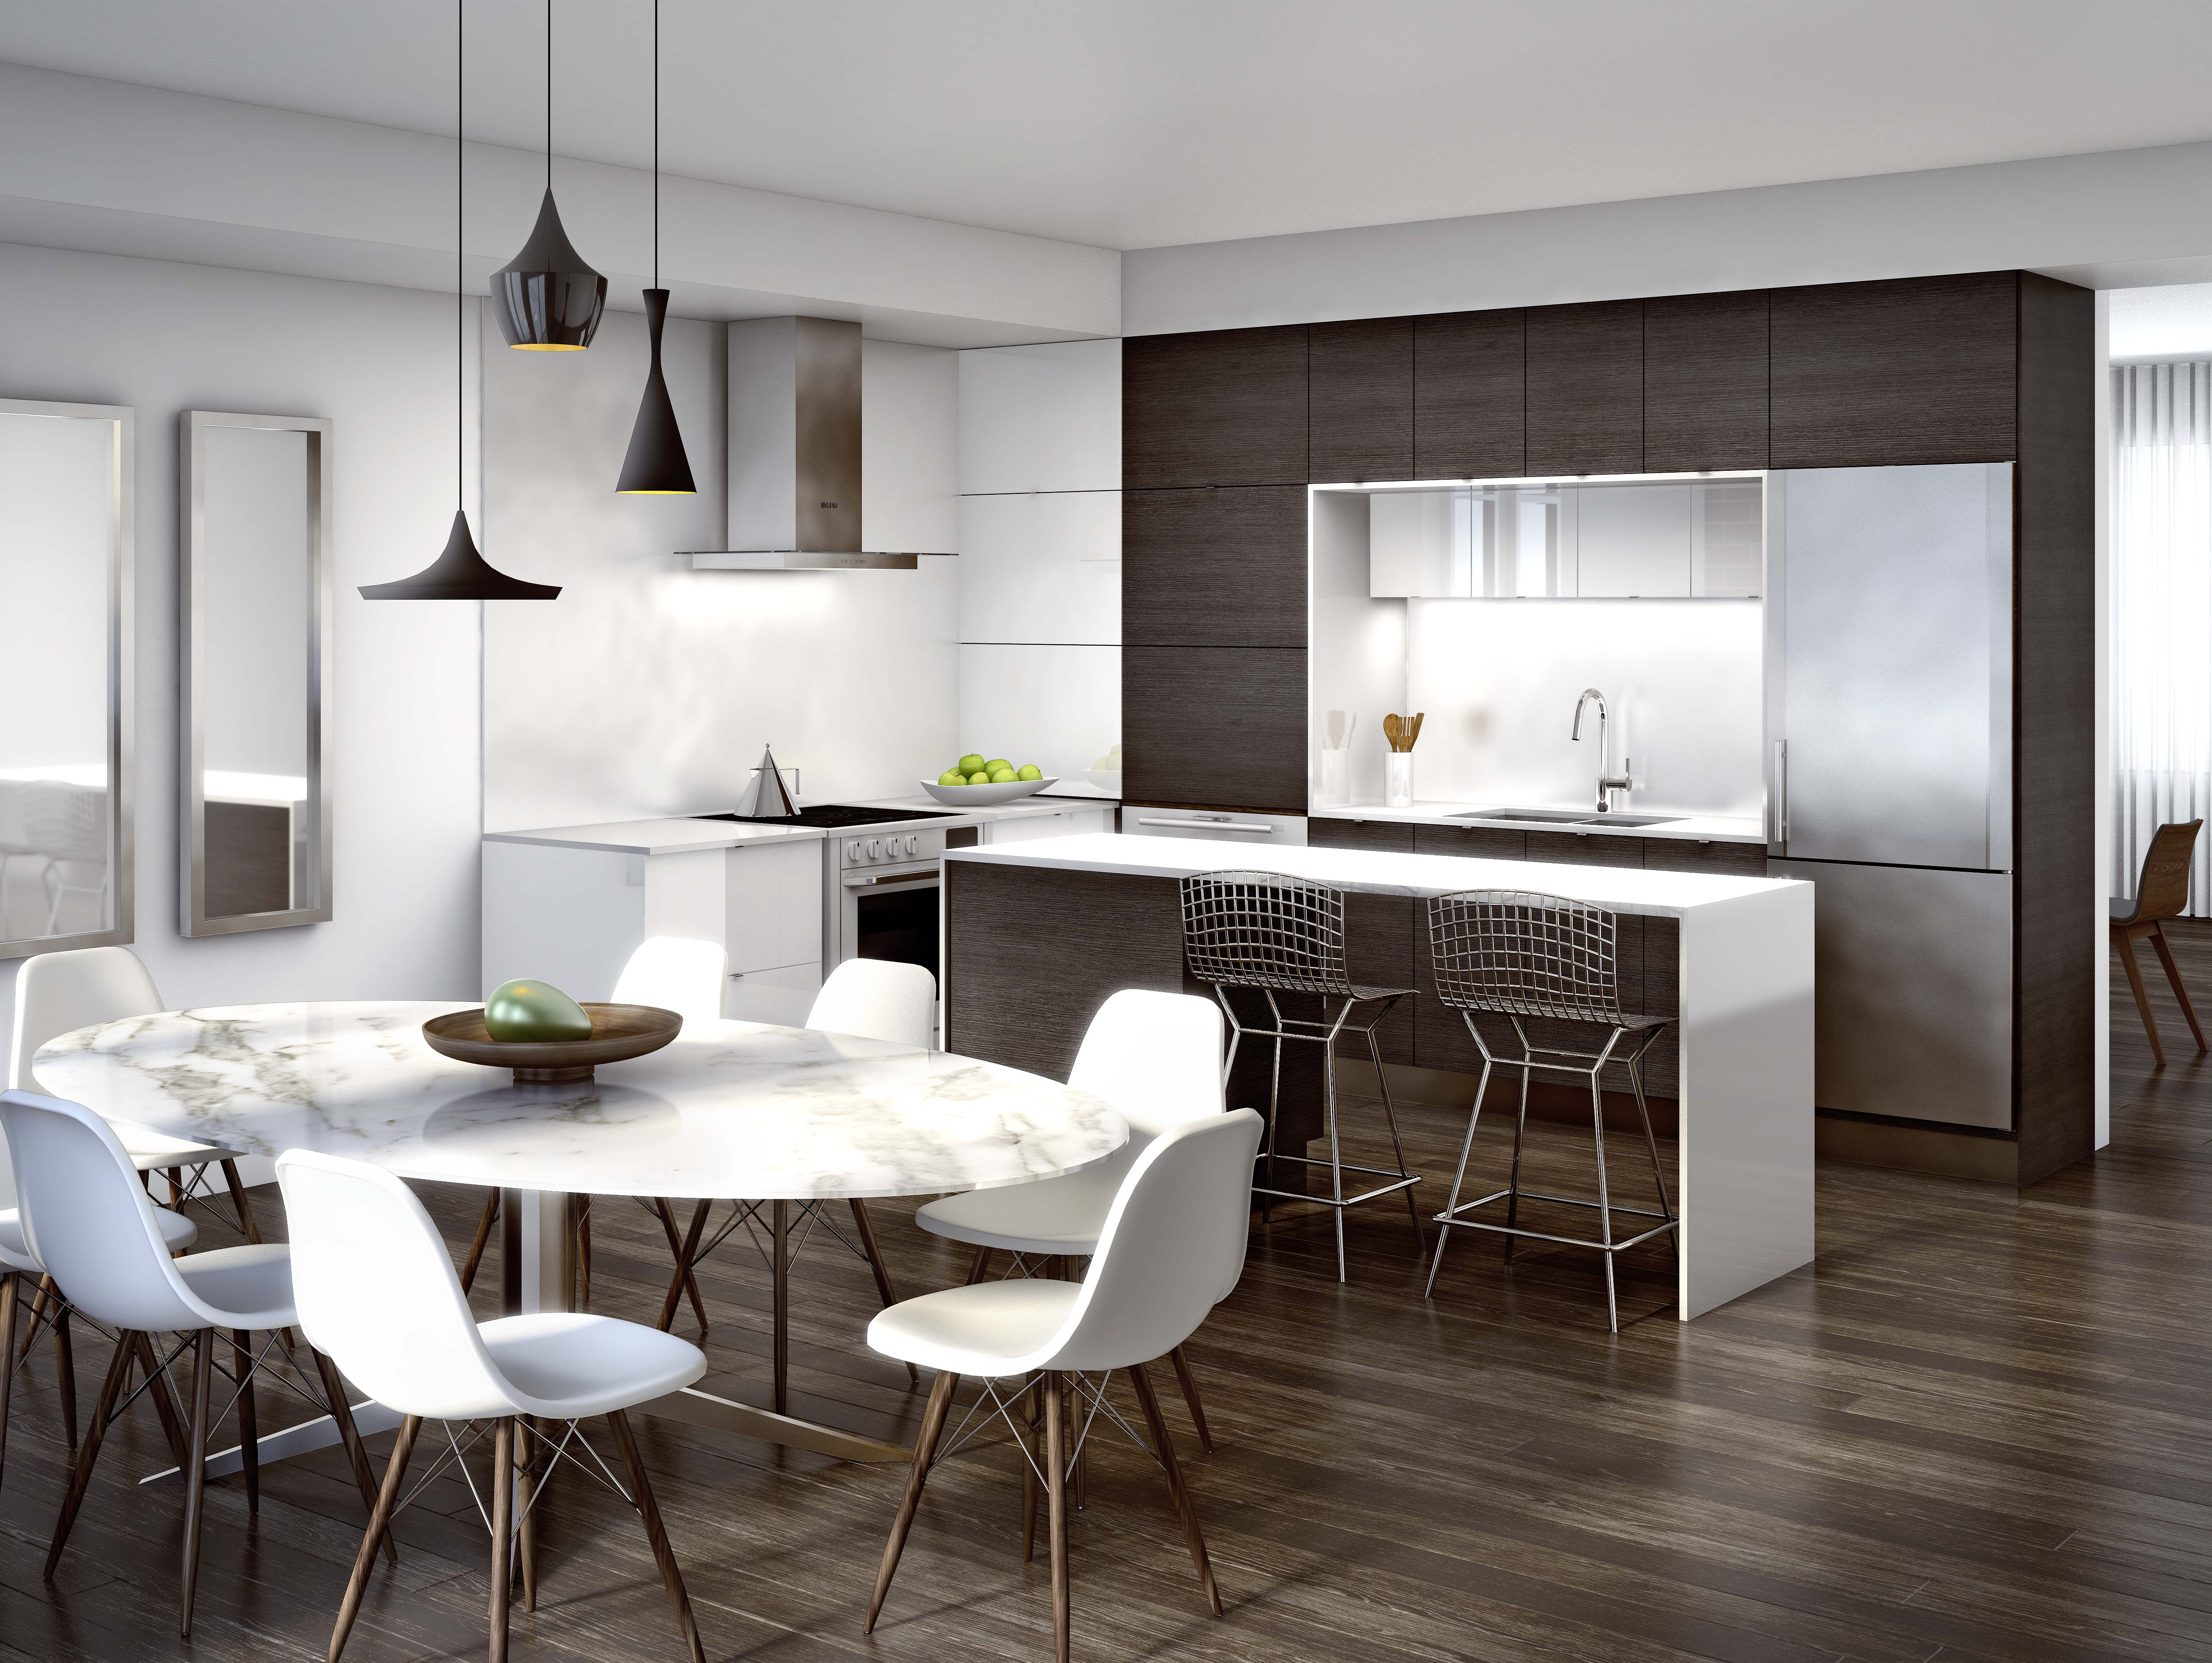 Great Gulf Trafalgar Landing rendering of kitchen with dark brown cabinets and white marble table with white chairs